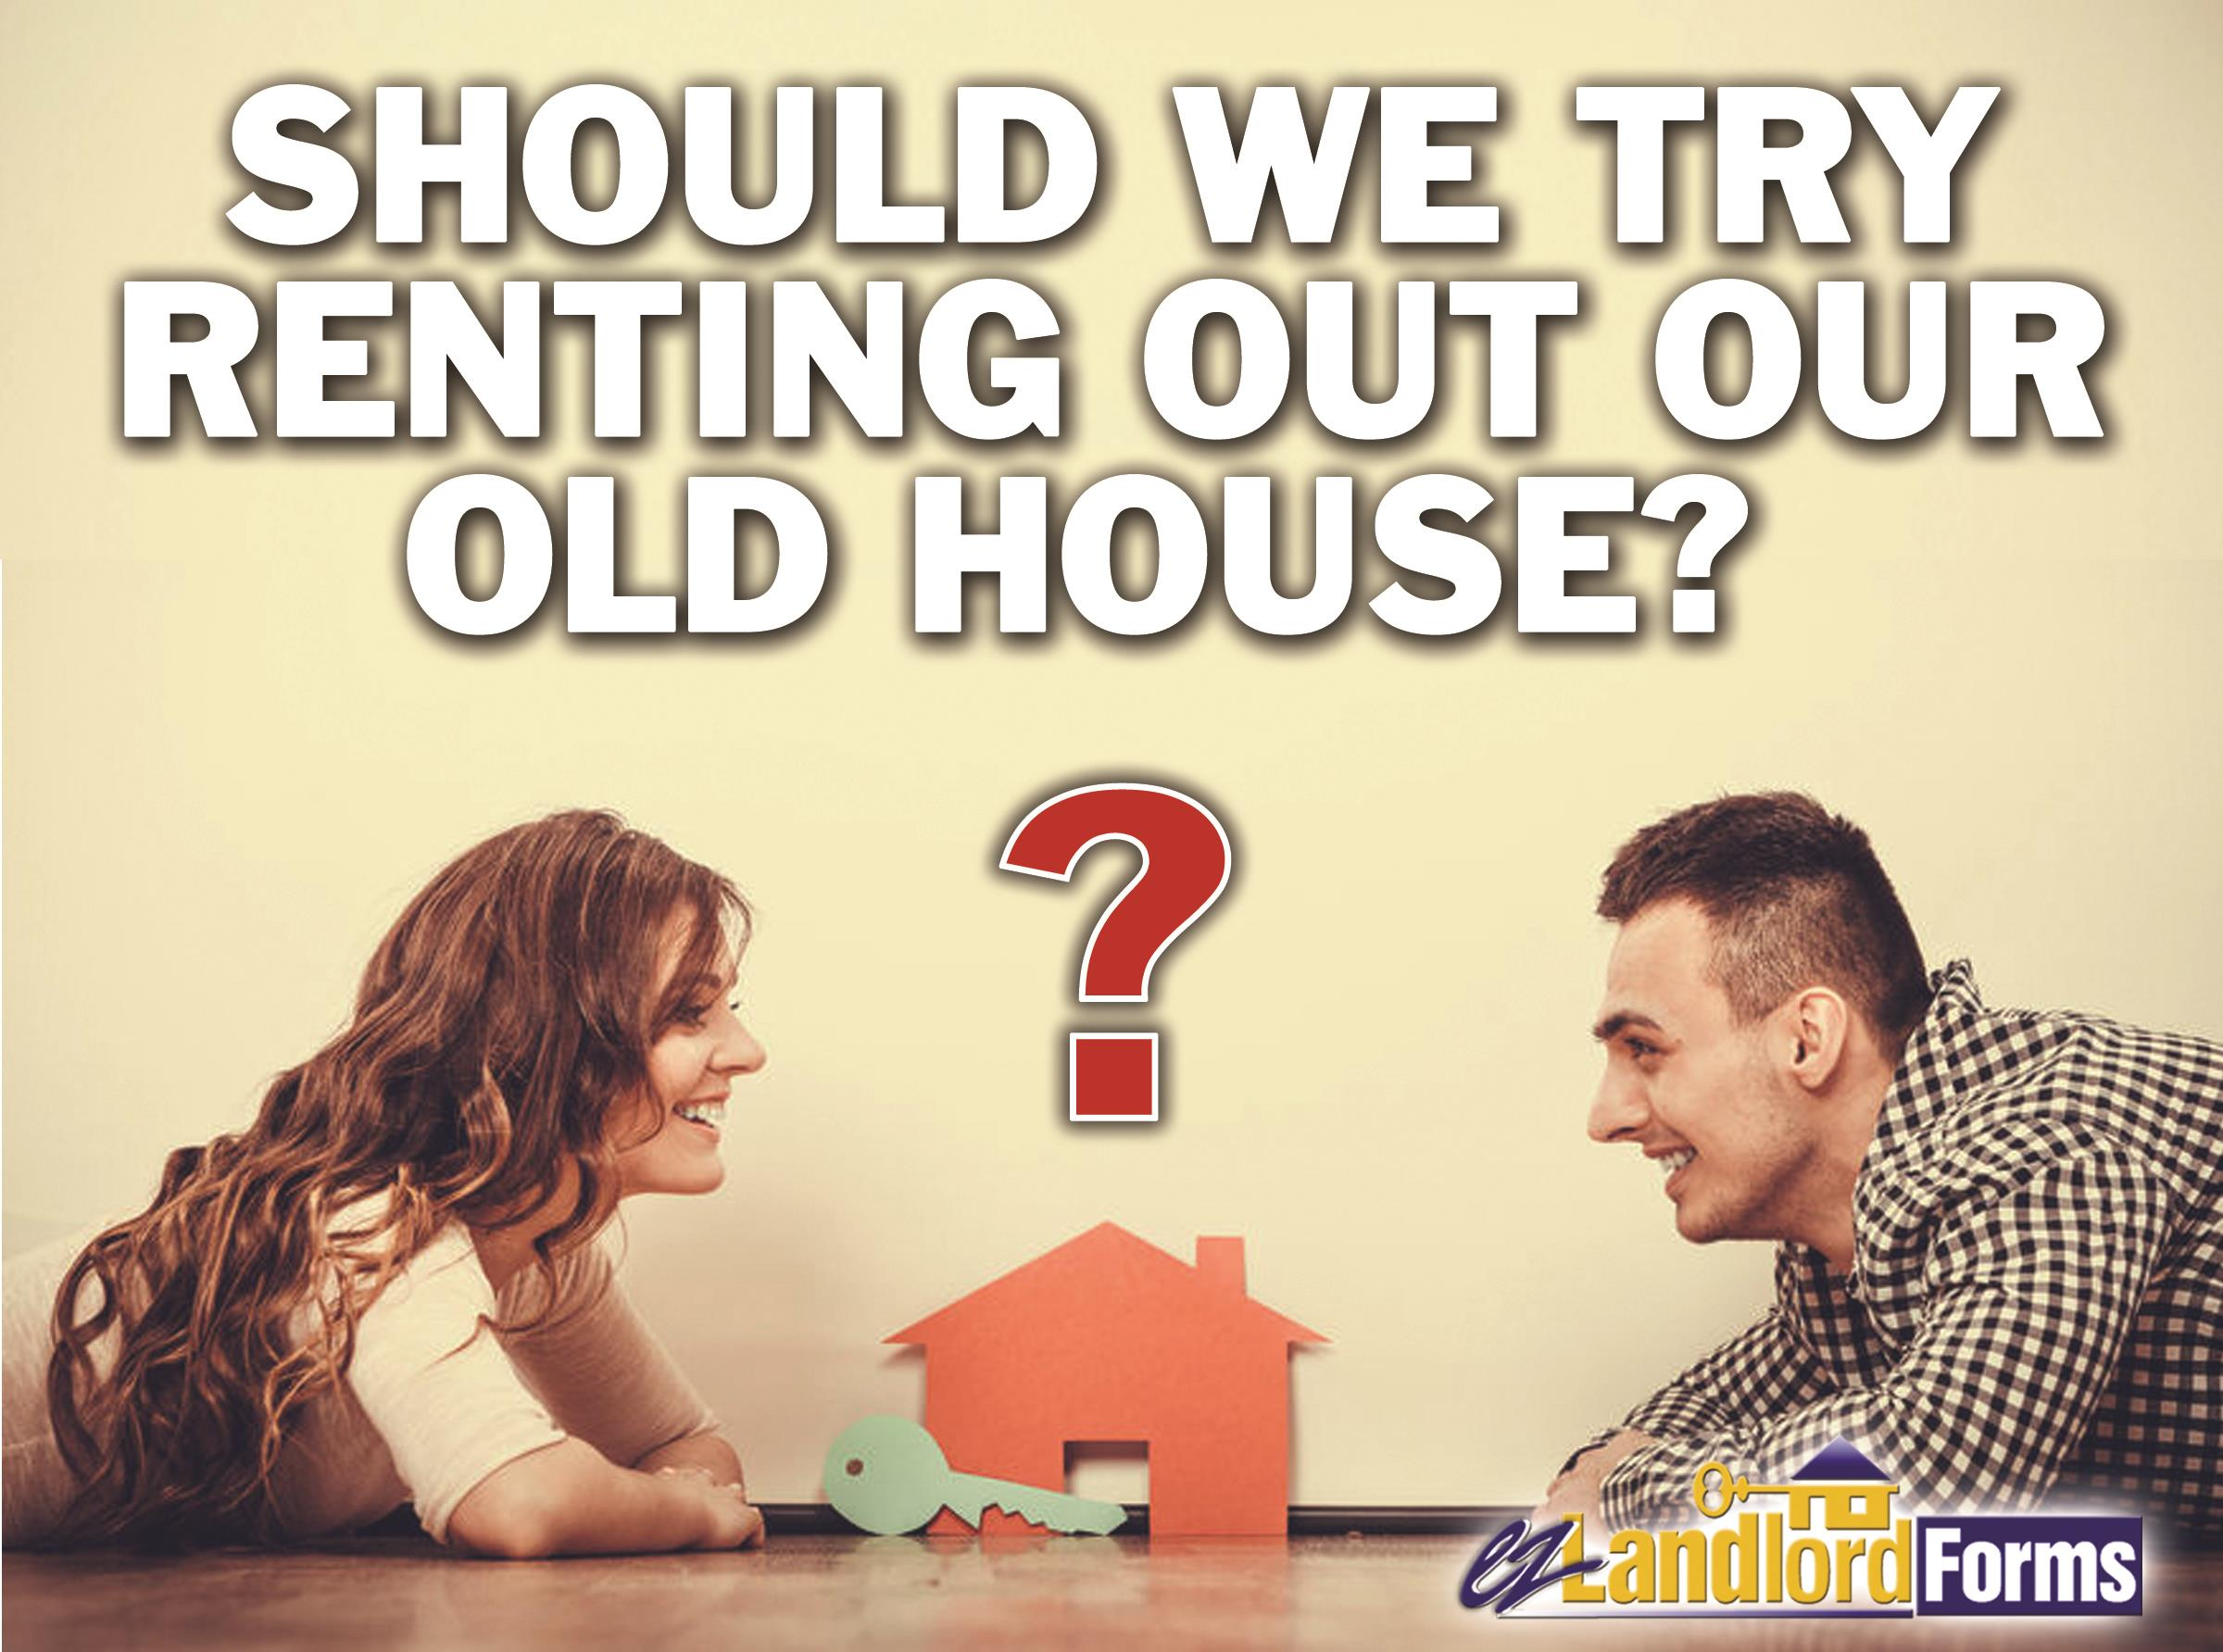 Should_We_Try_Renting_our_old_house_V2